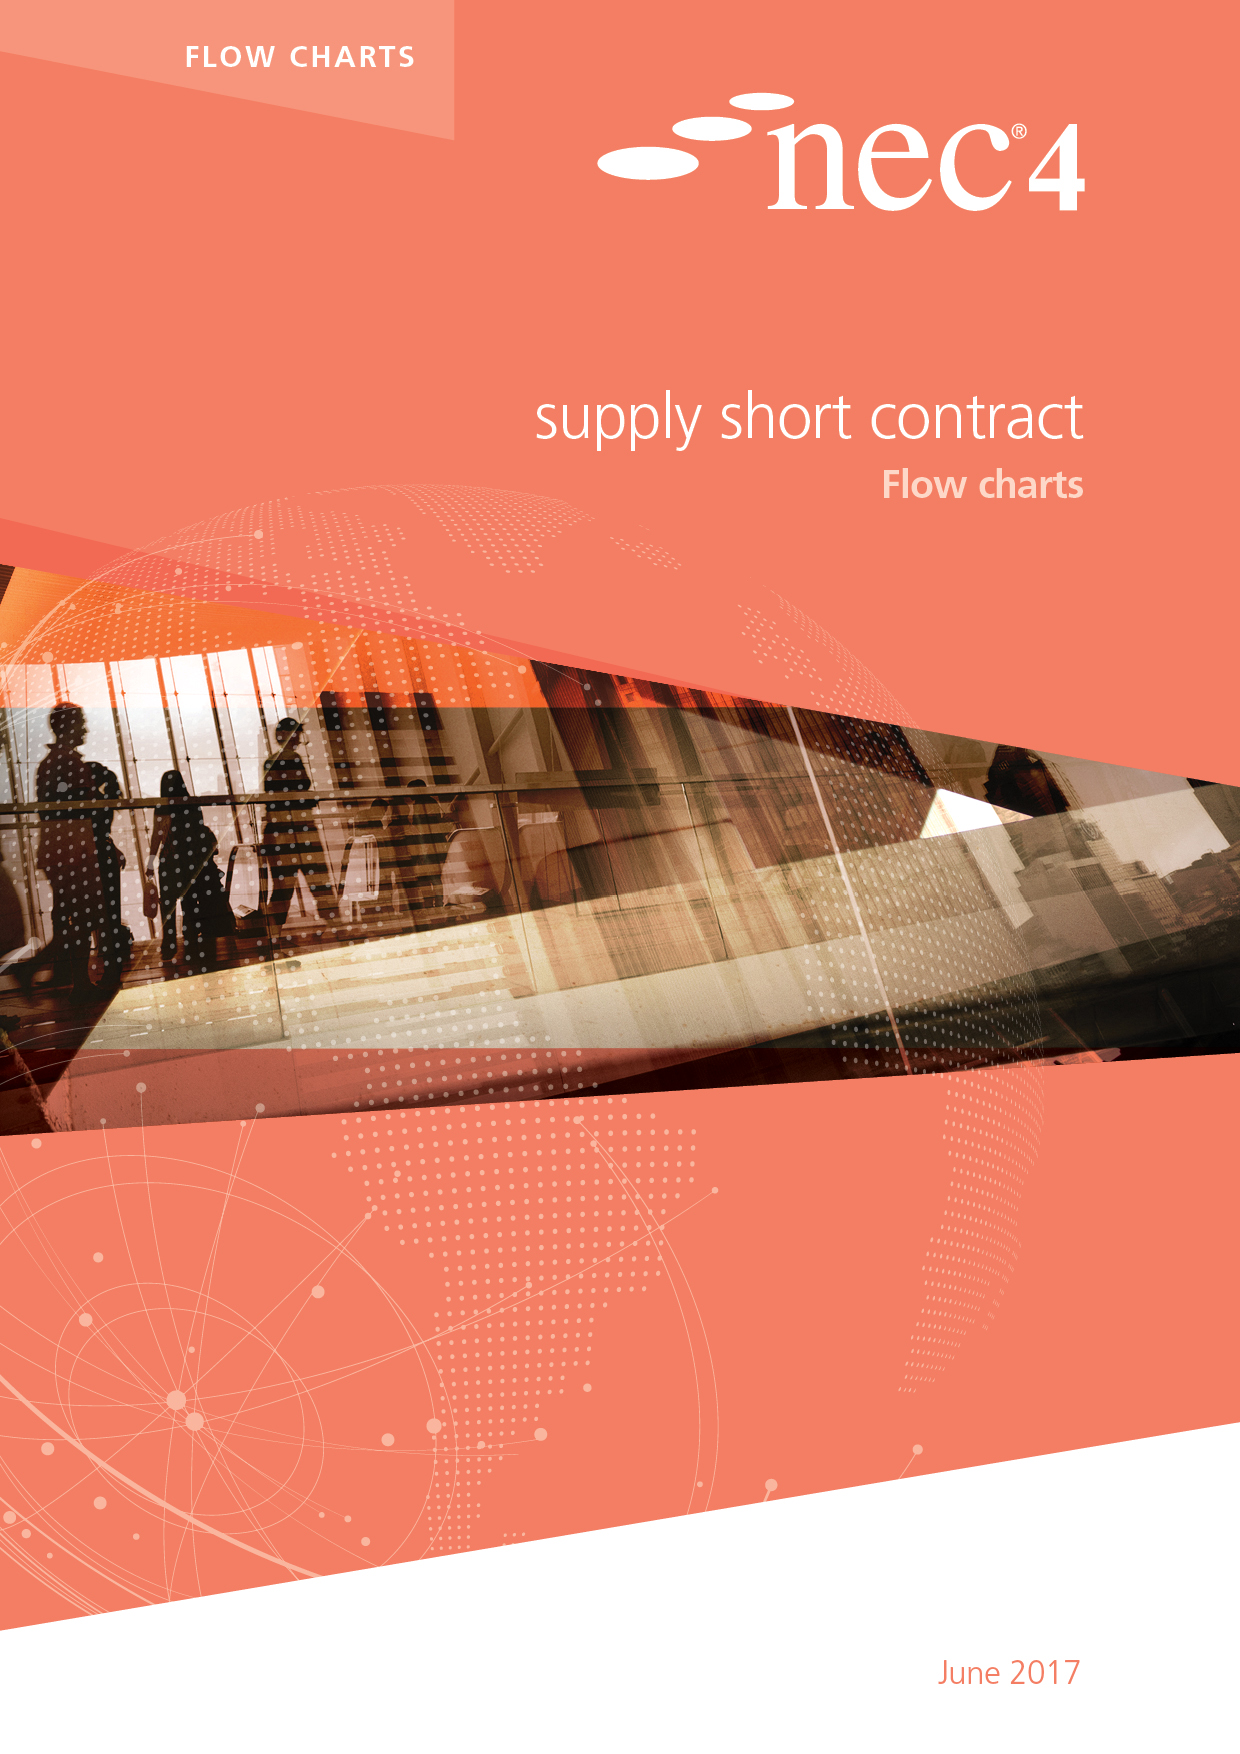 NEC4: Supply Short Contract Flow Charts